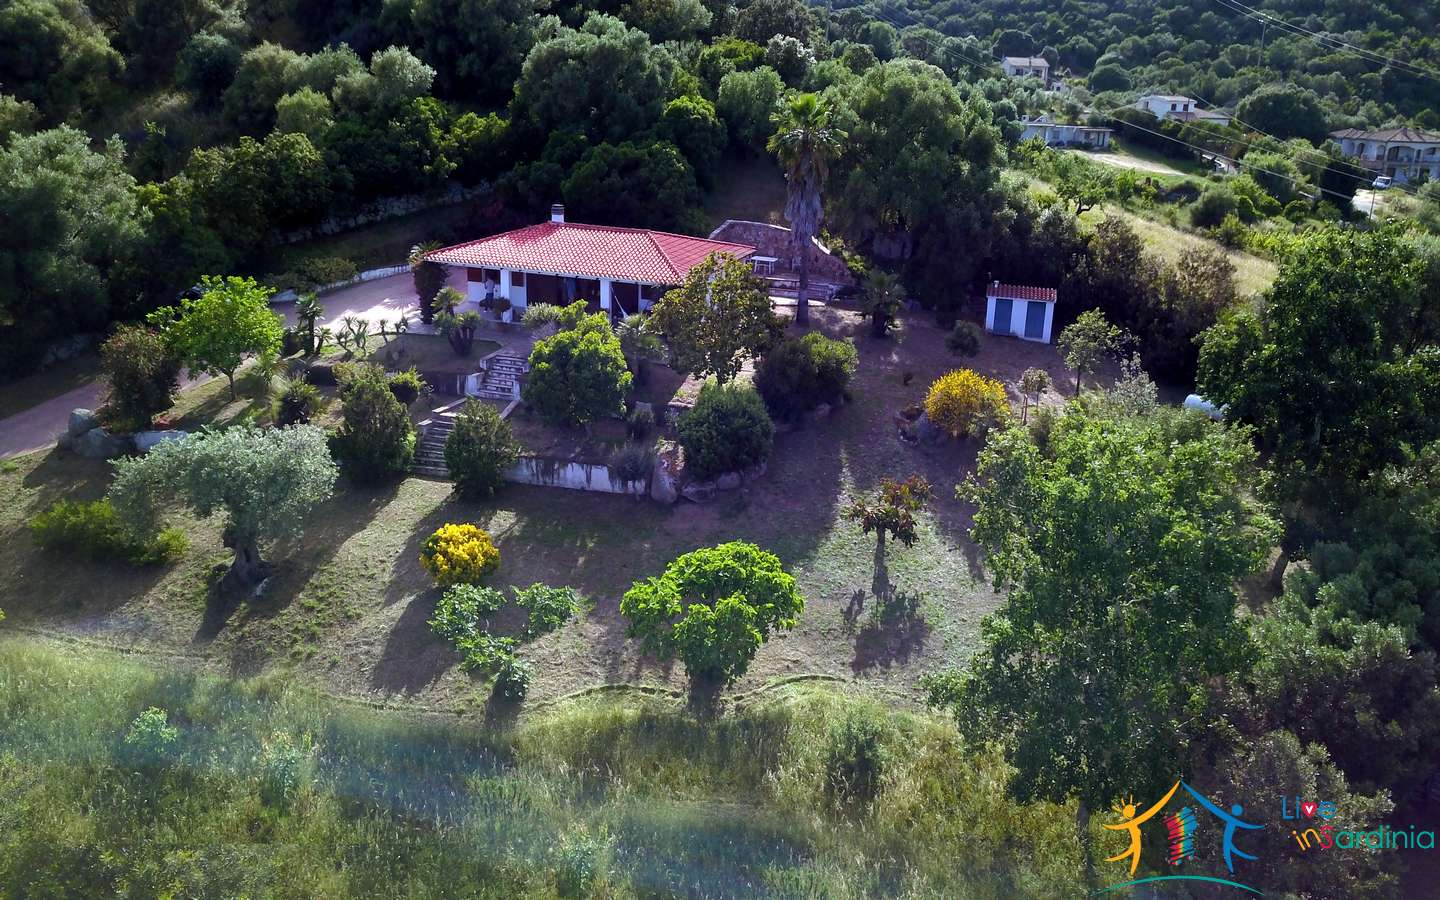 Delightful Rural Villas With 1 Ha Park For Sale Near Olbia, North Sardinia